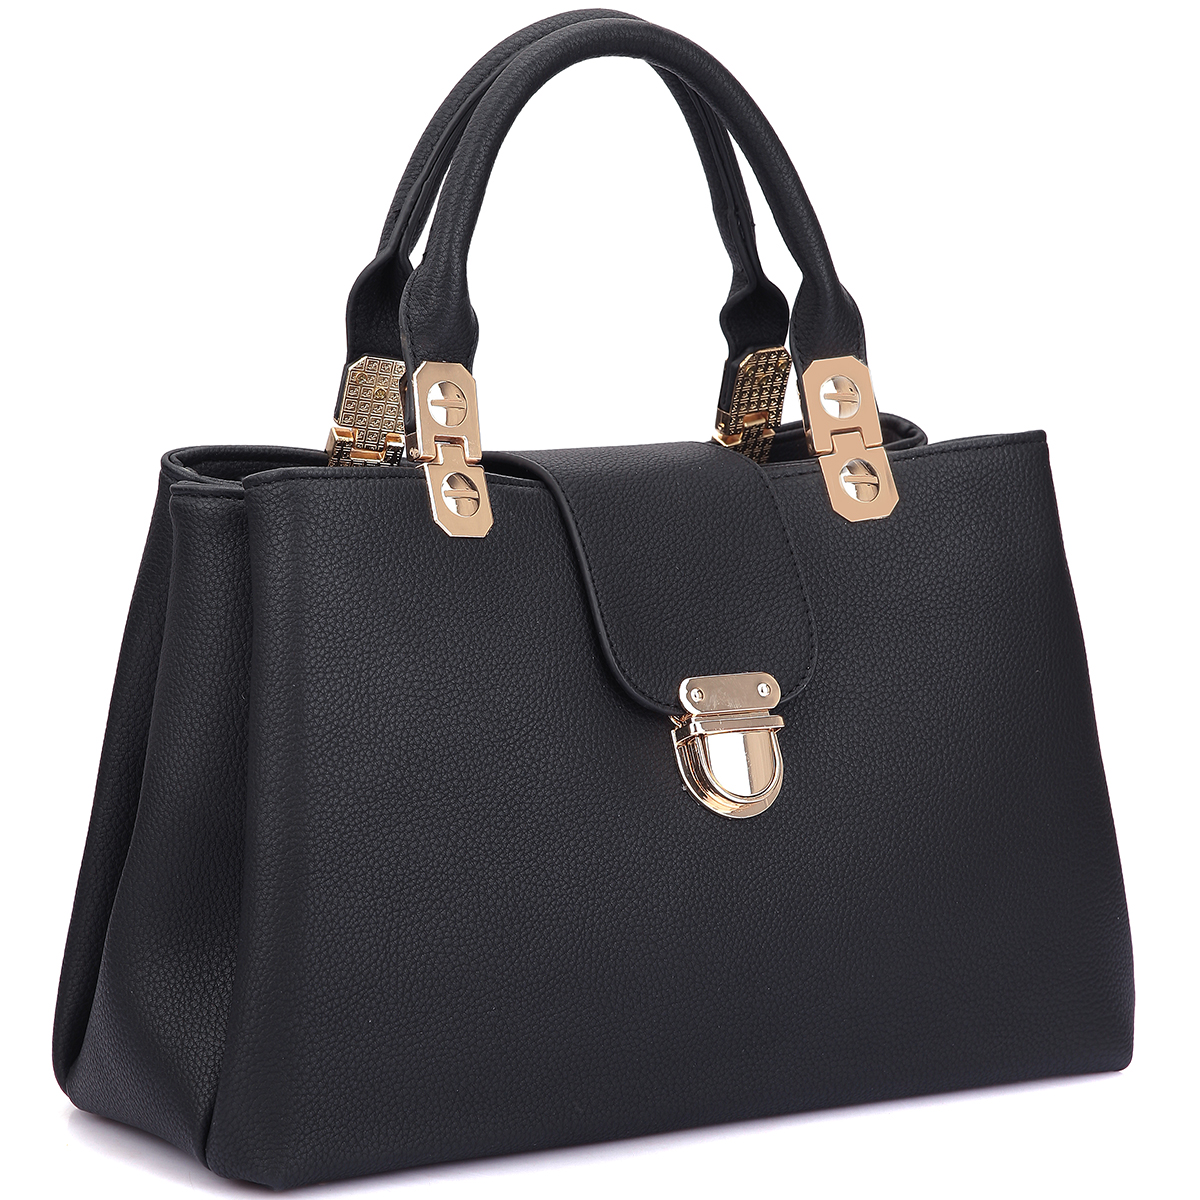 DaseinFashion Double Pocket Satchel